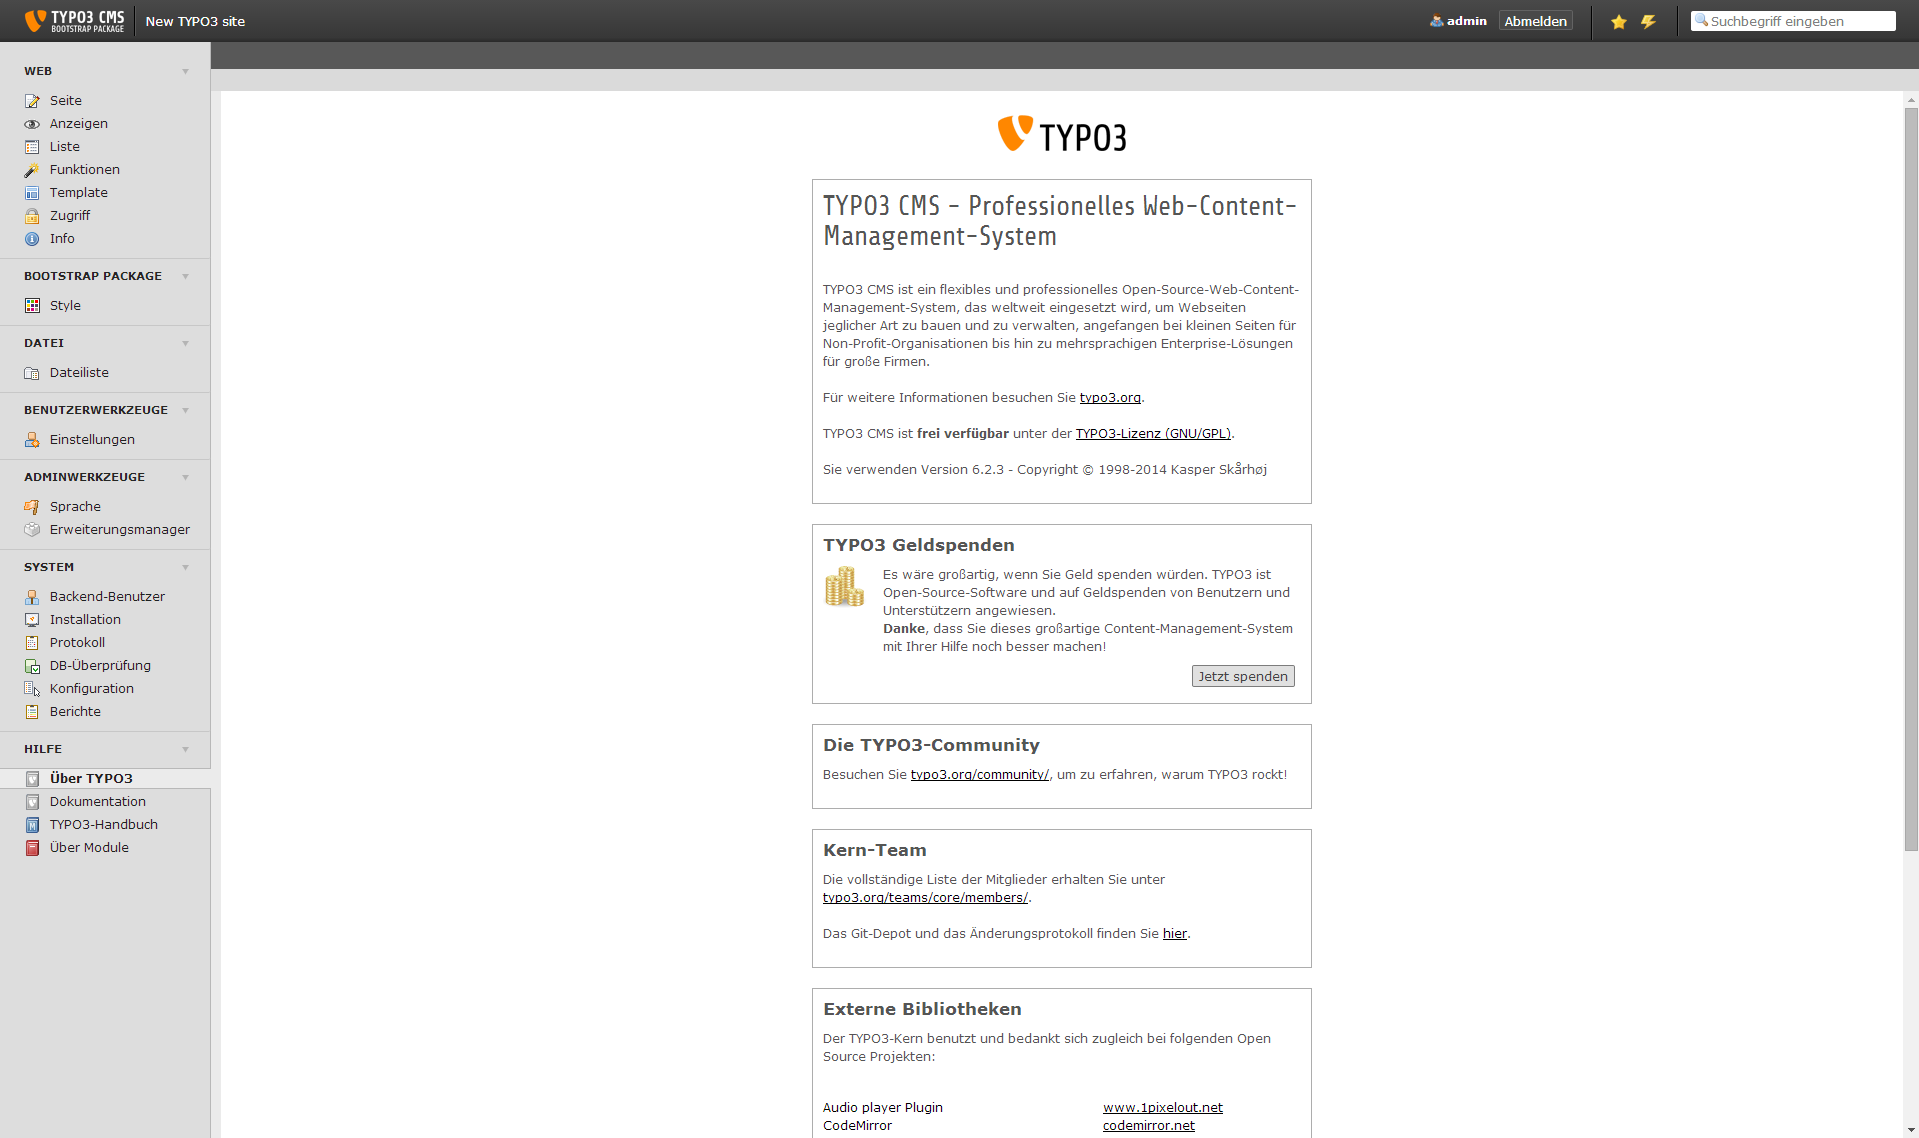 TYPO3 - Backend